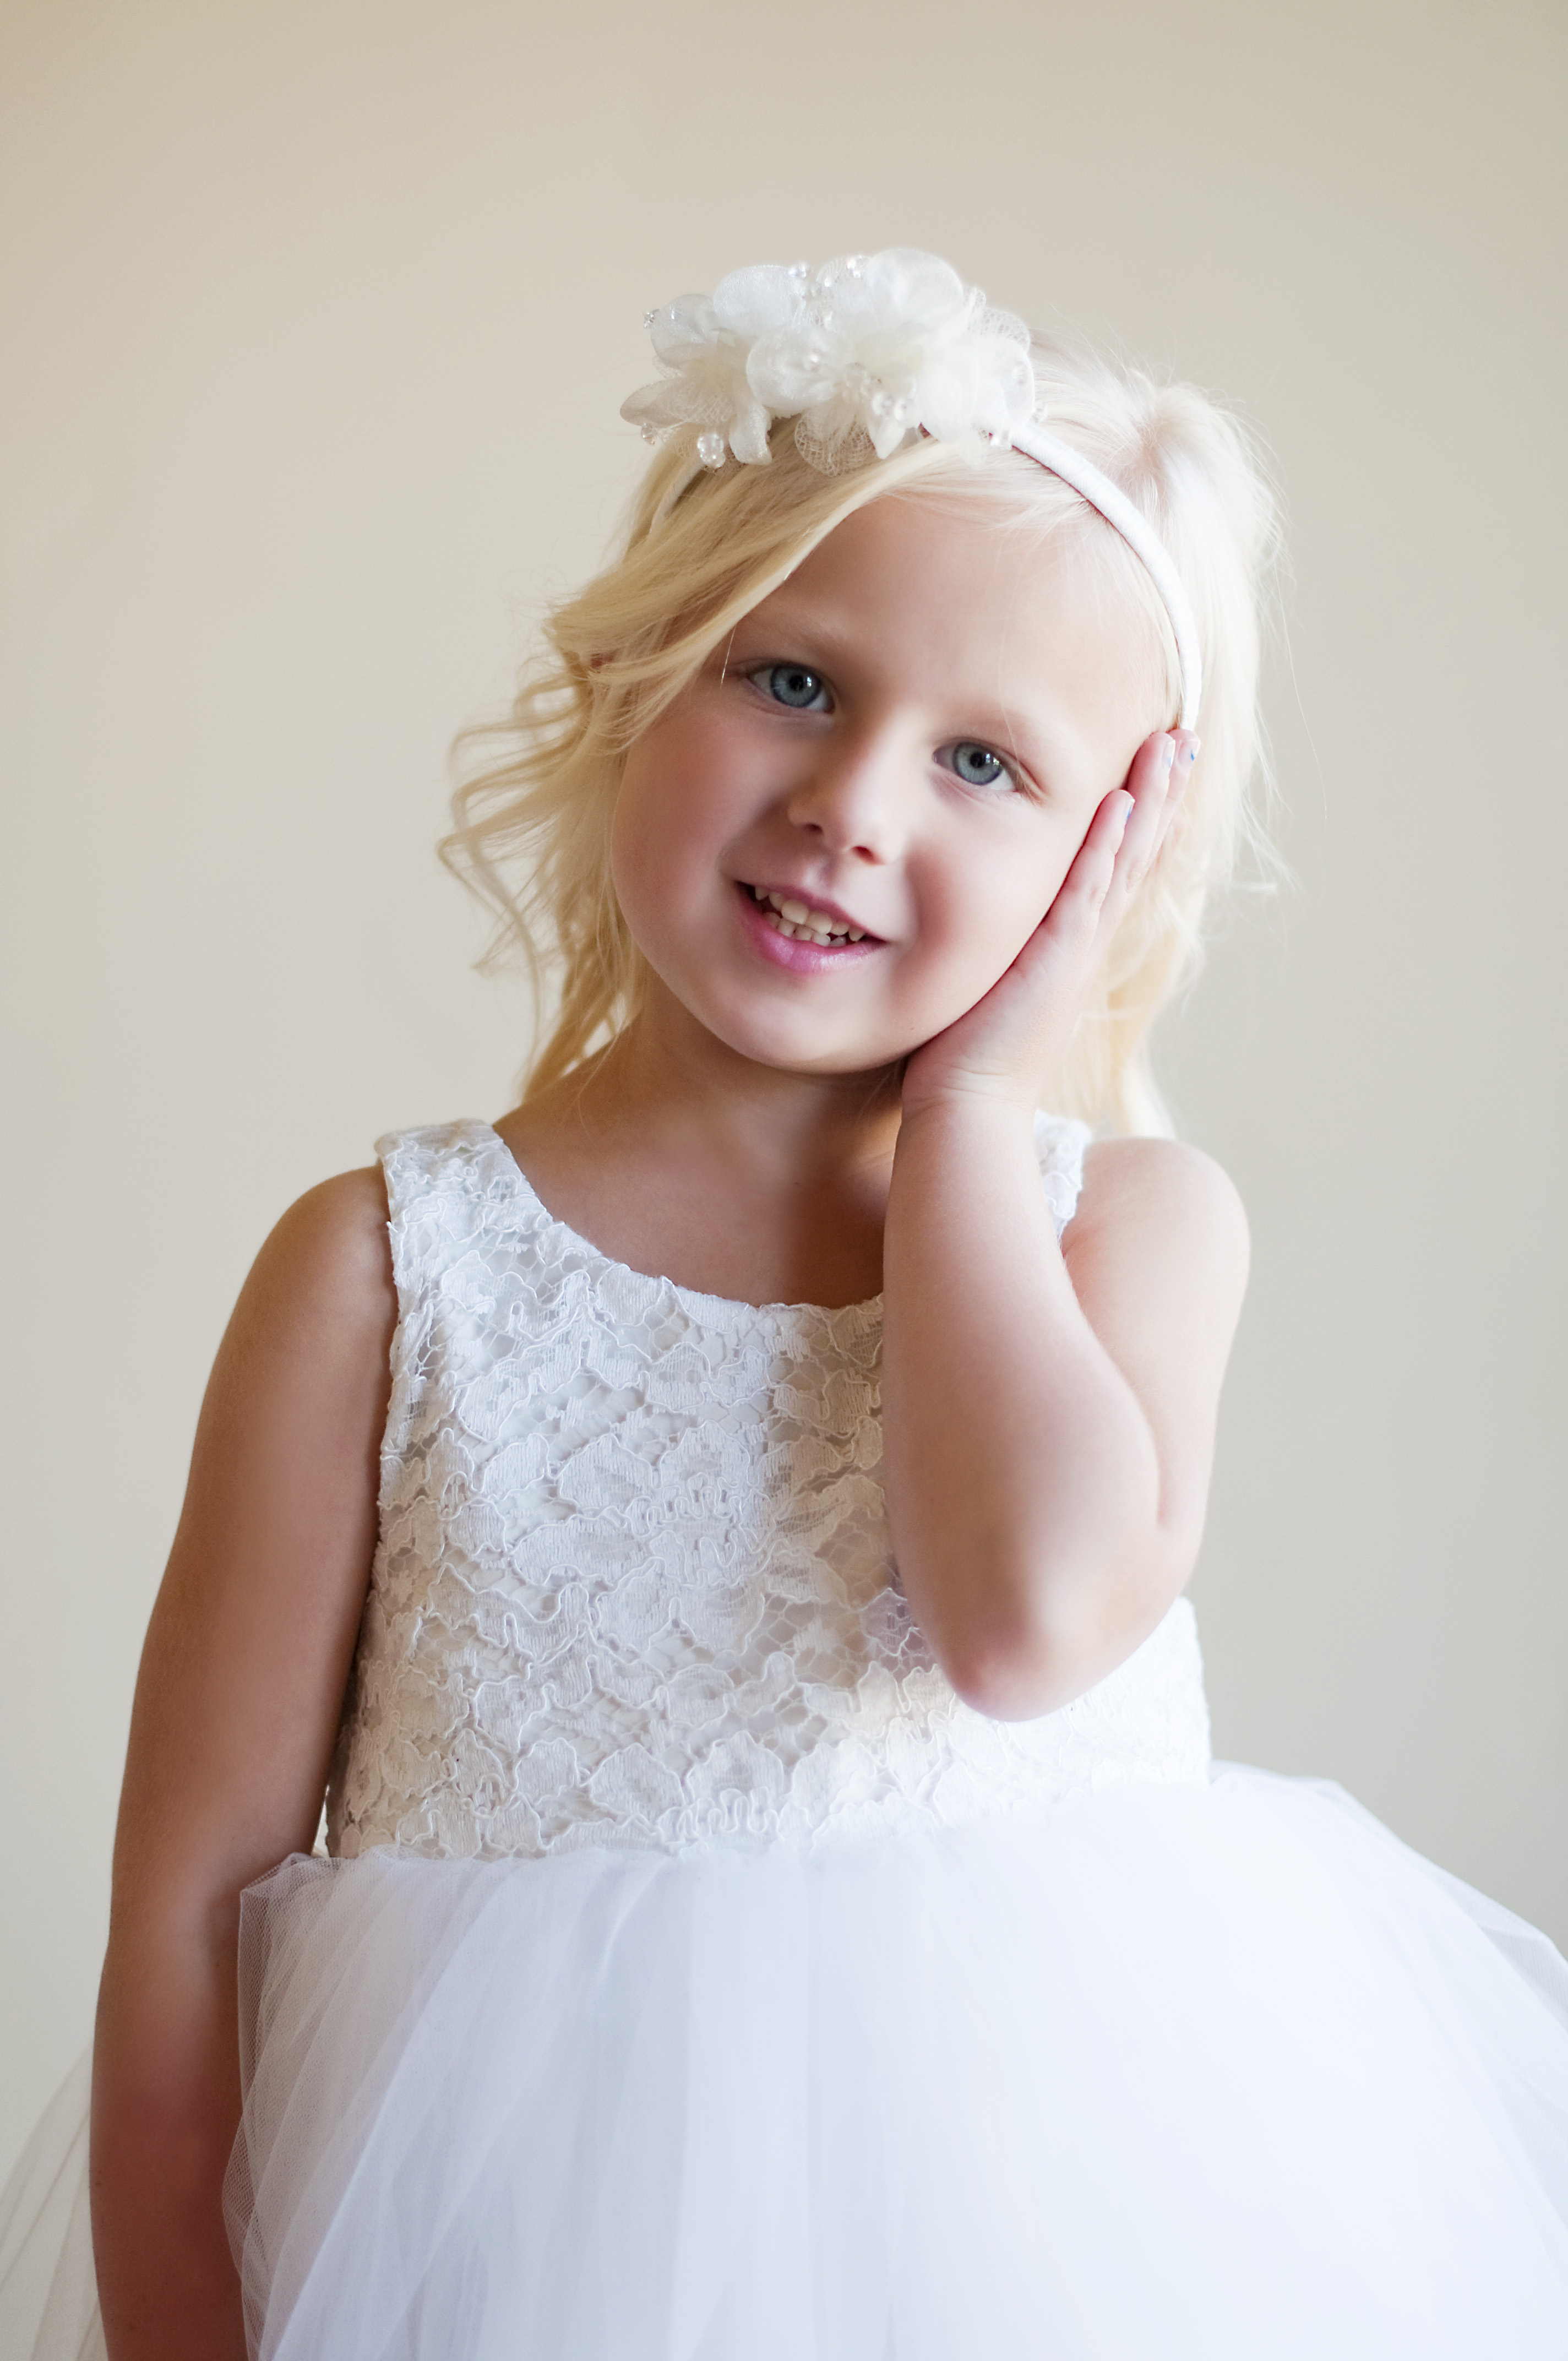 a06971ae2 The Honiton dress is a white or ivory lace flower girl dress with a full  tulle skirt also for junior bridesmaids.